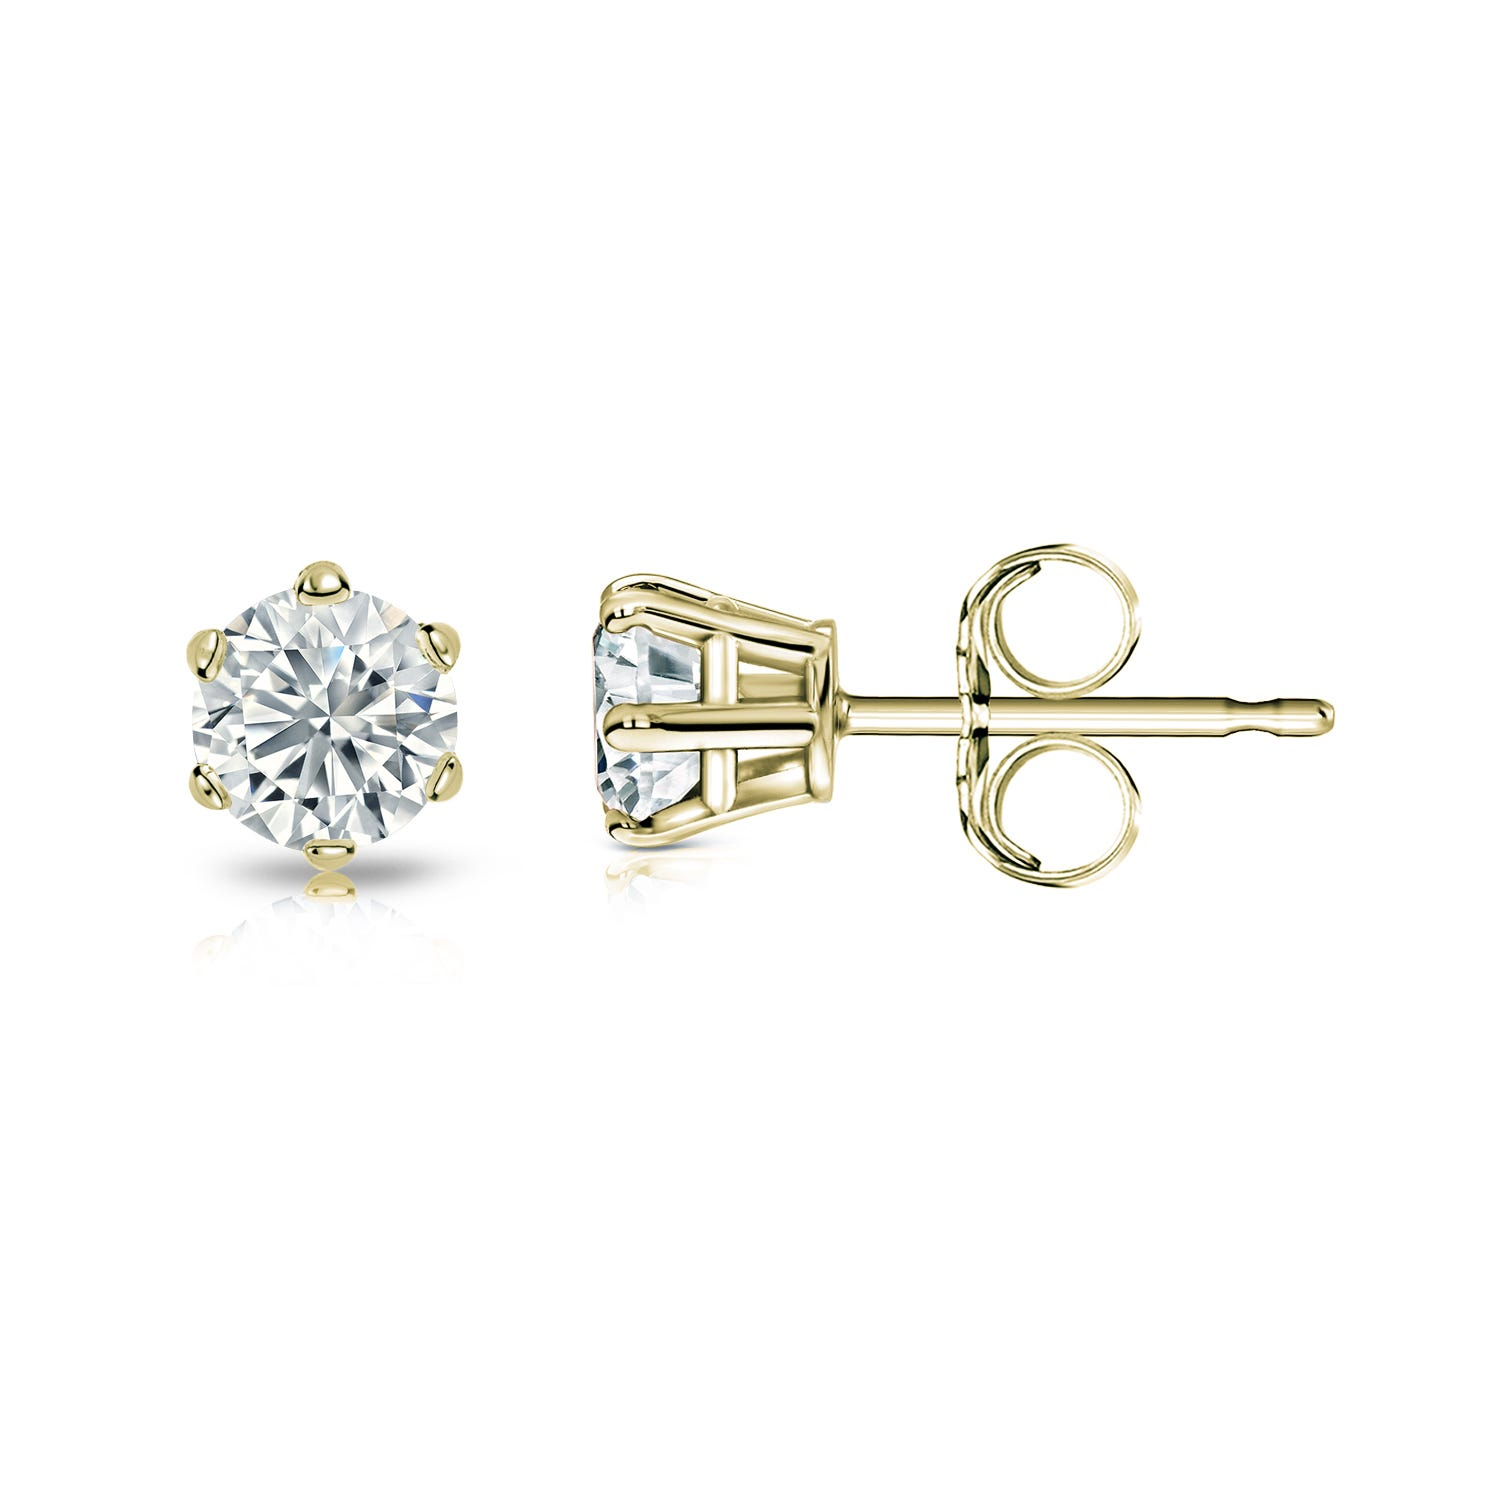 Round Diamond 1/5ctw. (IJ-I1) Solitaire Stud 6-Prong Earrings in 14K Yellow Gold